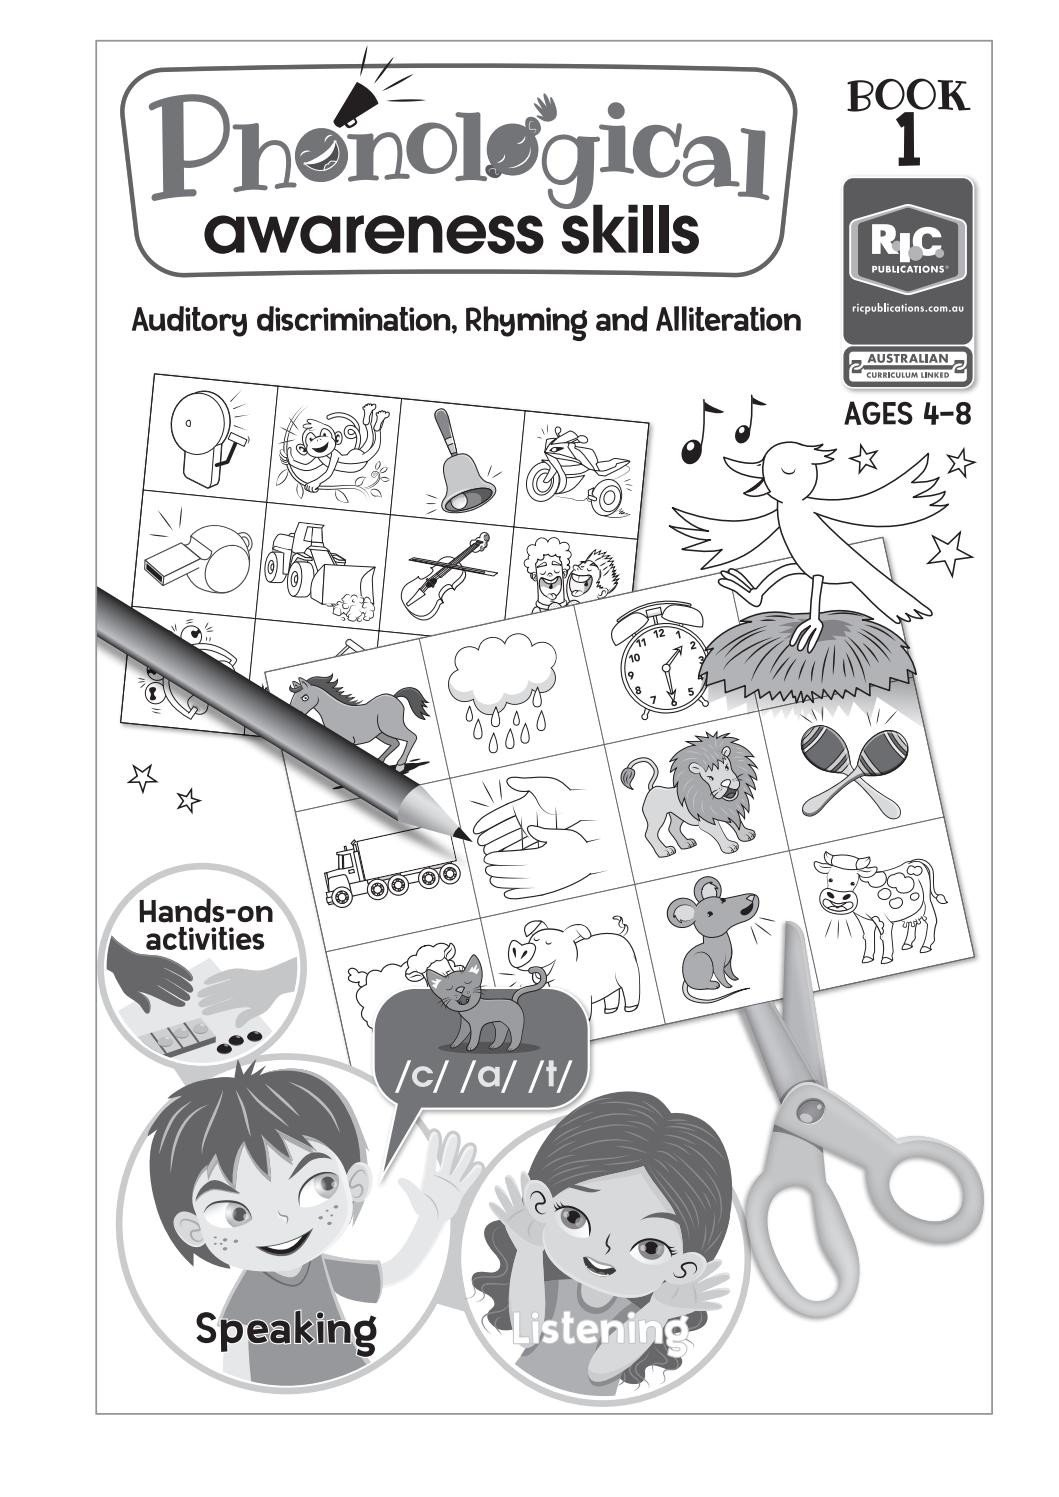 Final Consonant Deletion Worksheet Phonological Awareness Skills Book 1 by Teacher Superstore